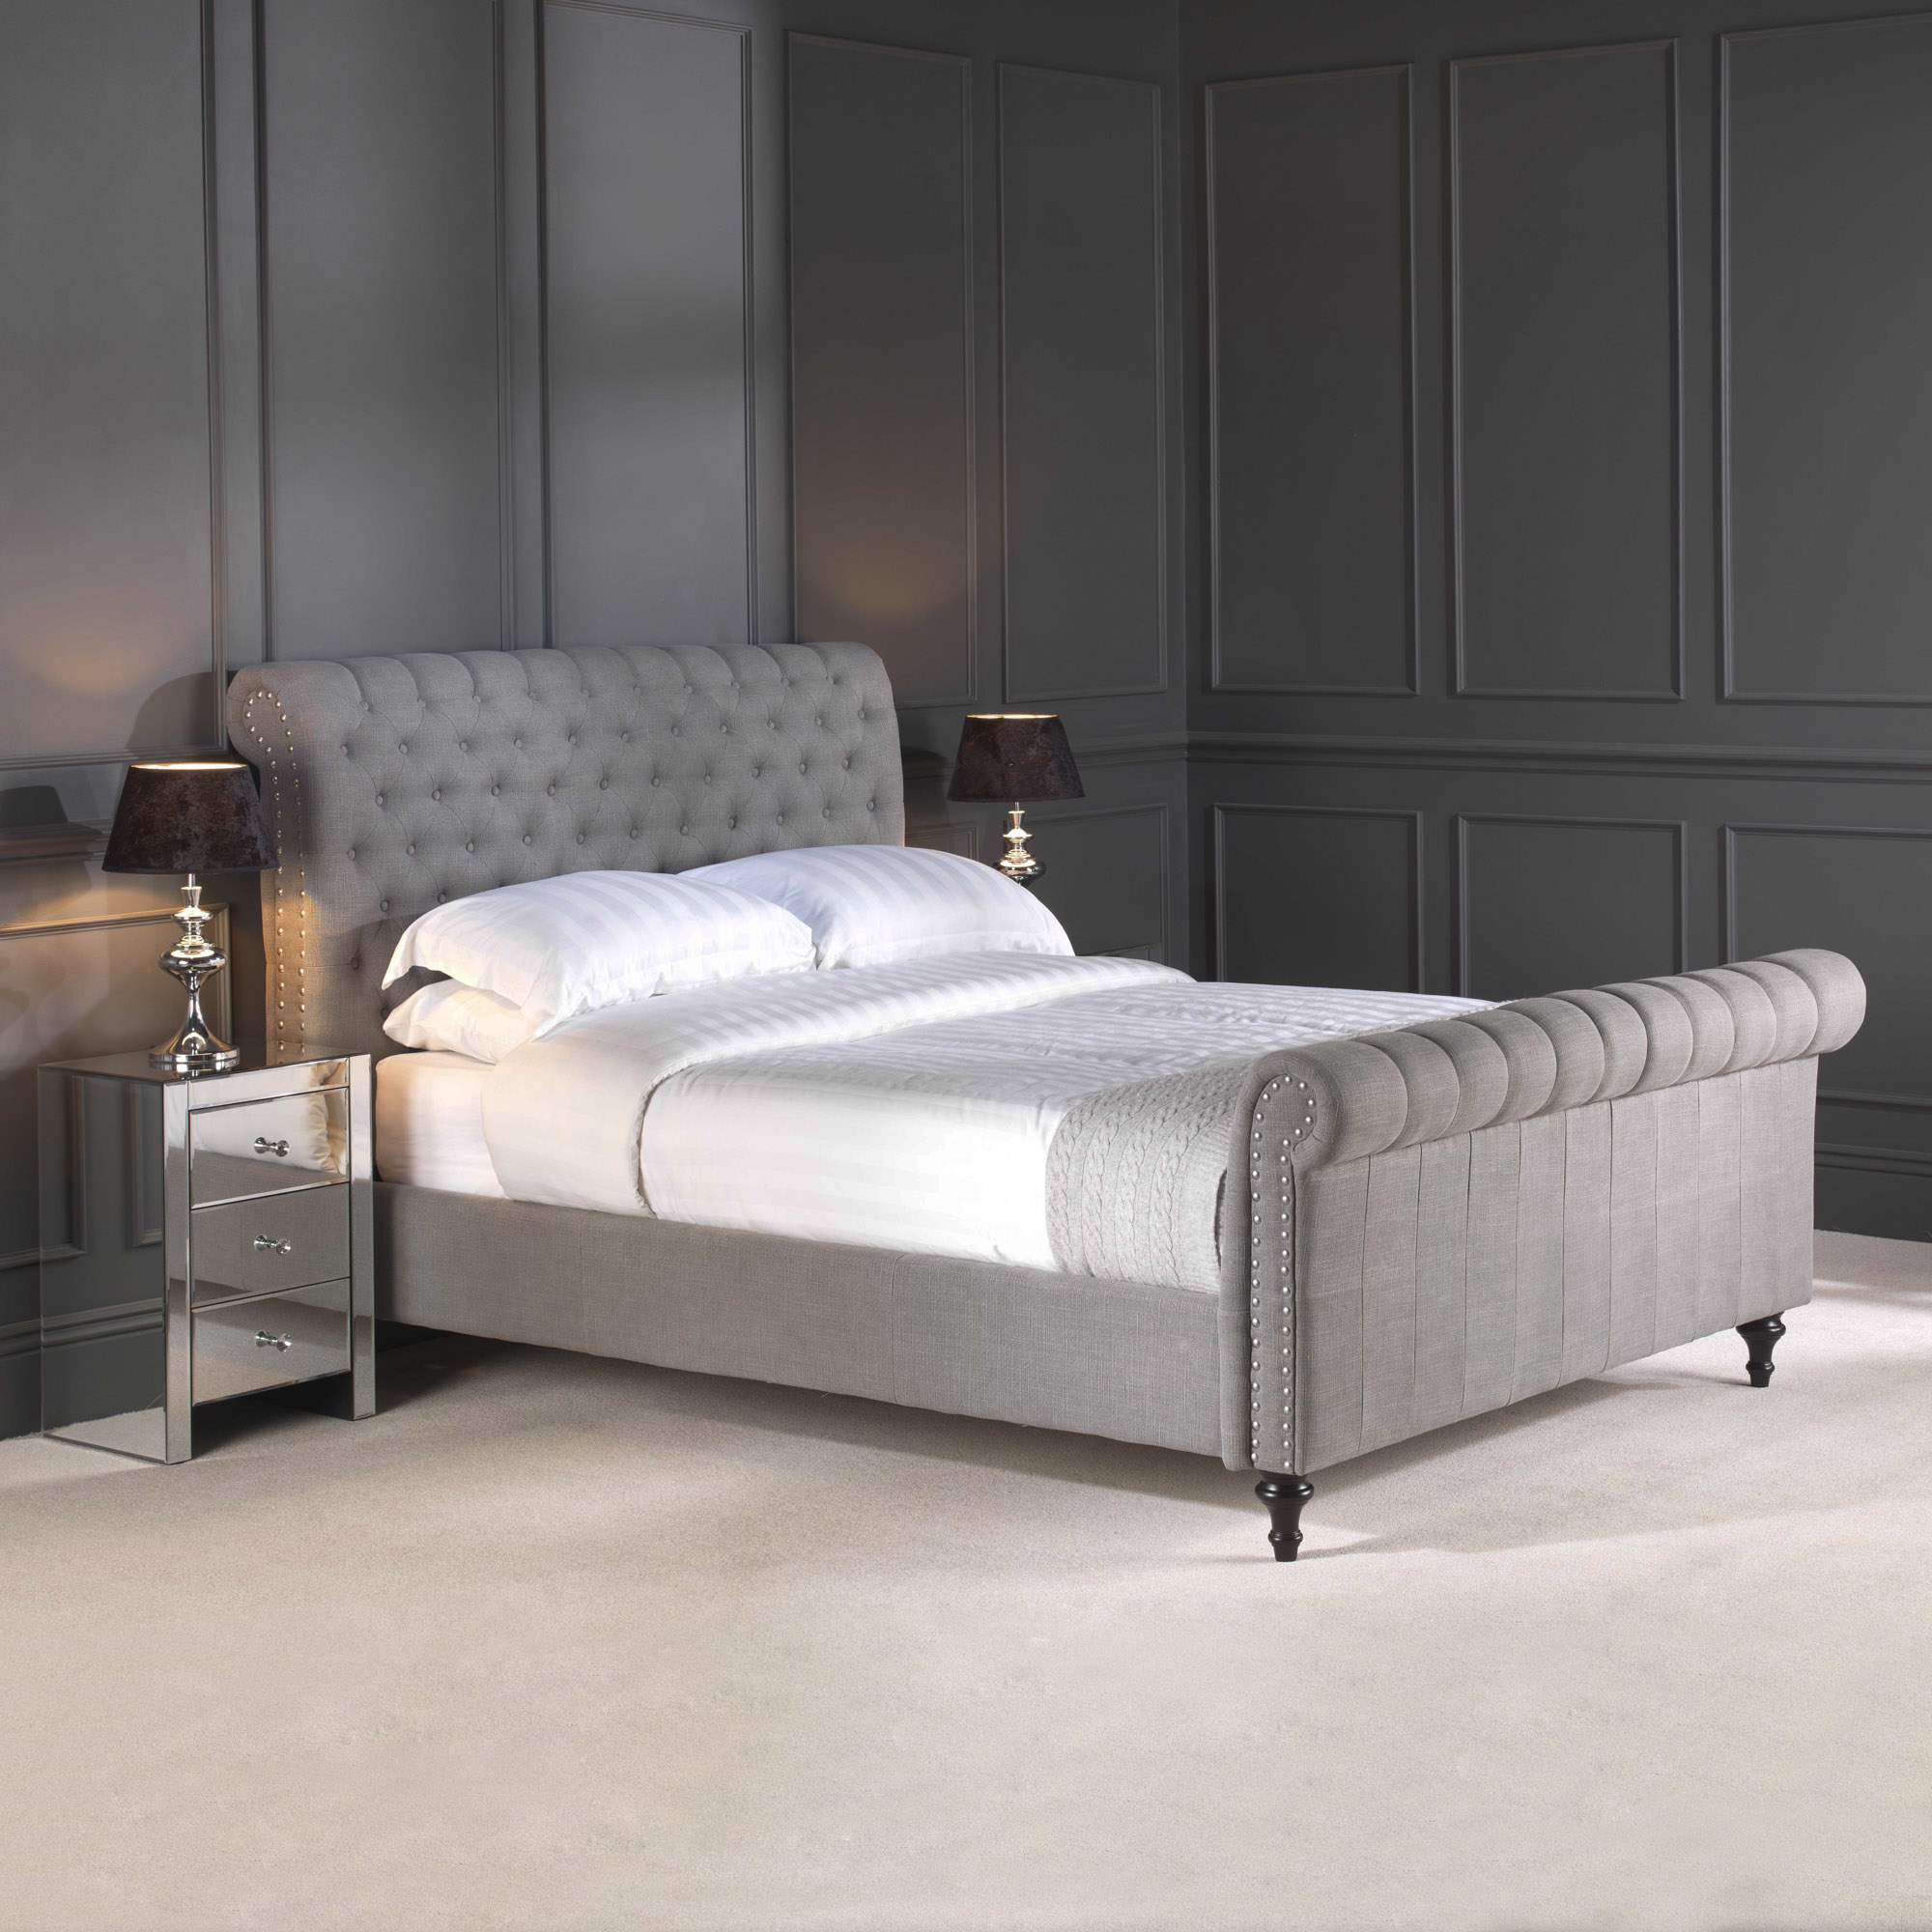 Super King Size Steel Premium Linen Upholstered Chesterfield Bed